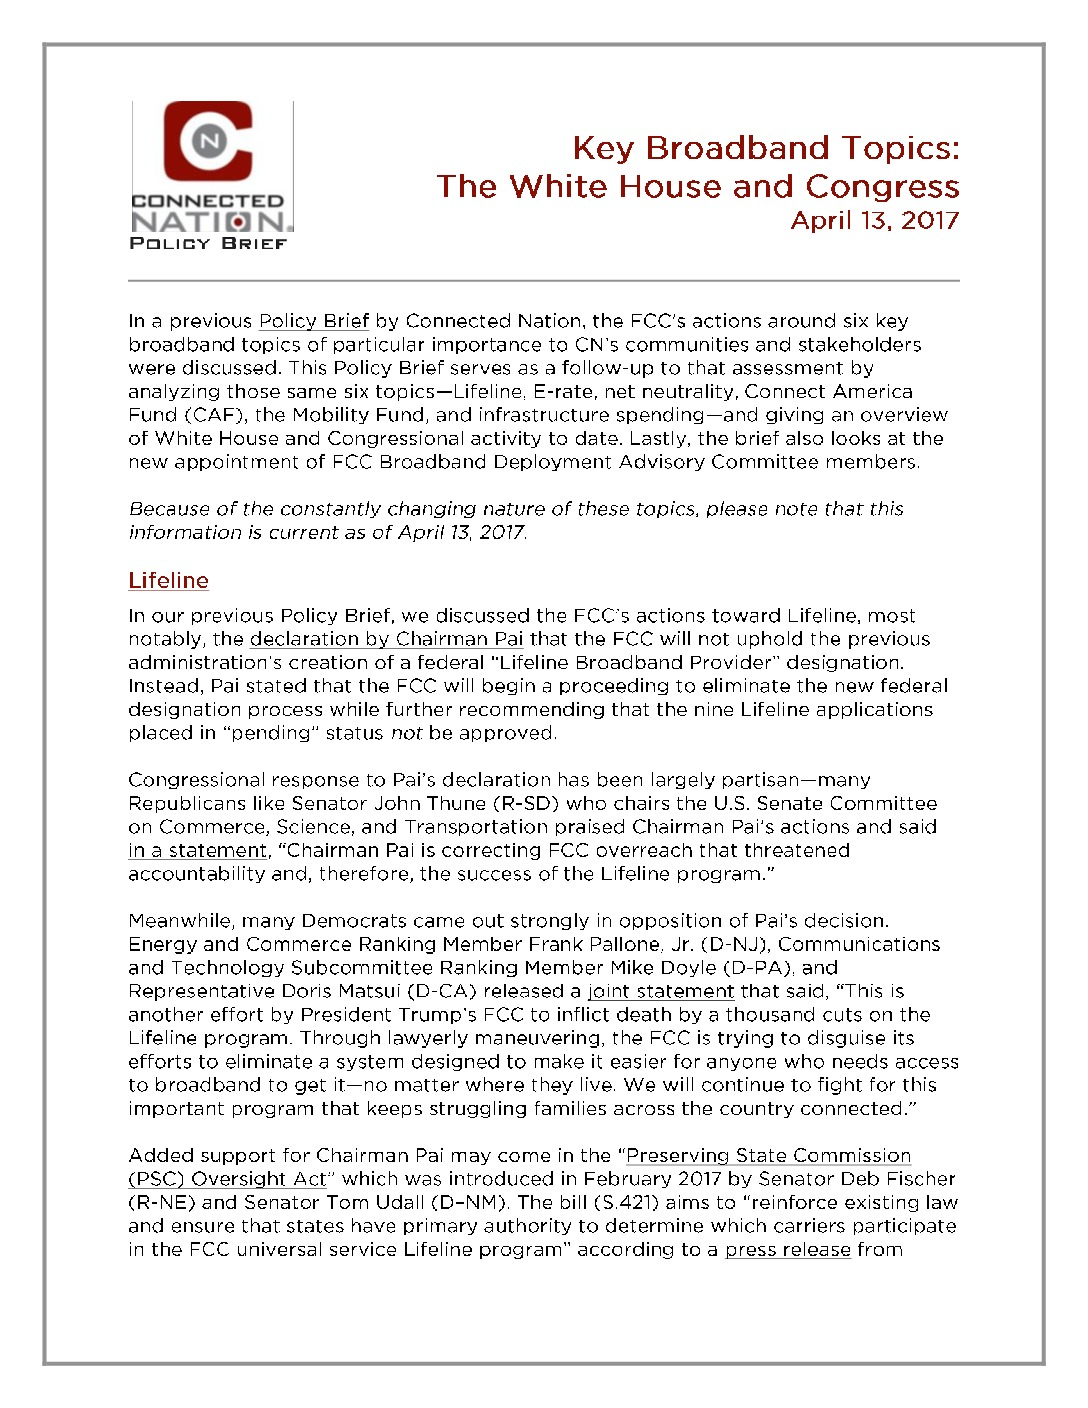 Key Broadband Topics: The White House and Congress